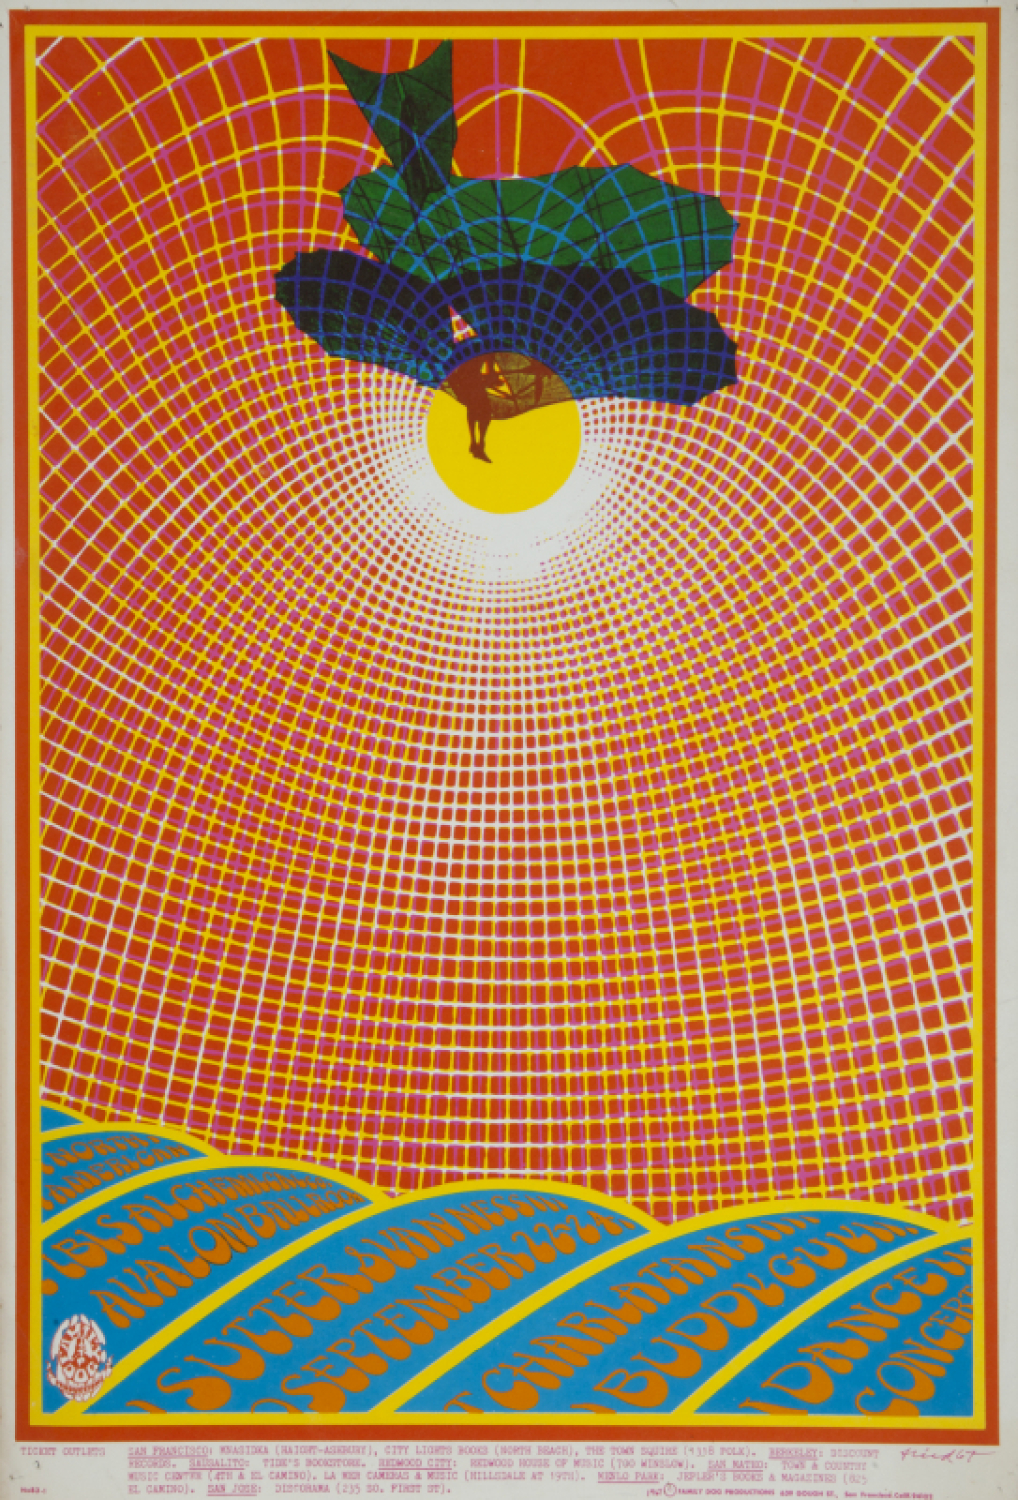 PSYCHEDELIC ACID ROCK CONCERT POSTERS (FAMILY DOG FD83